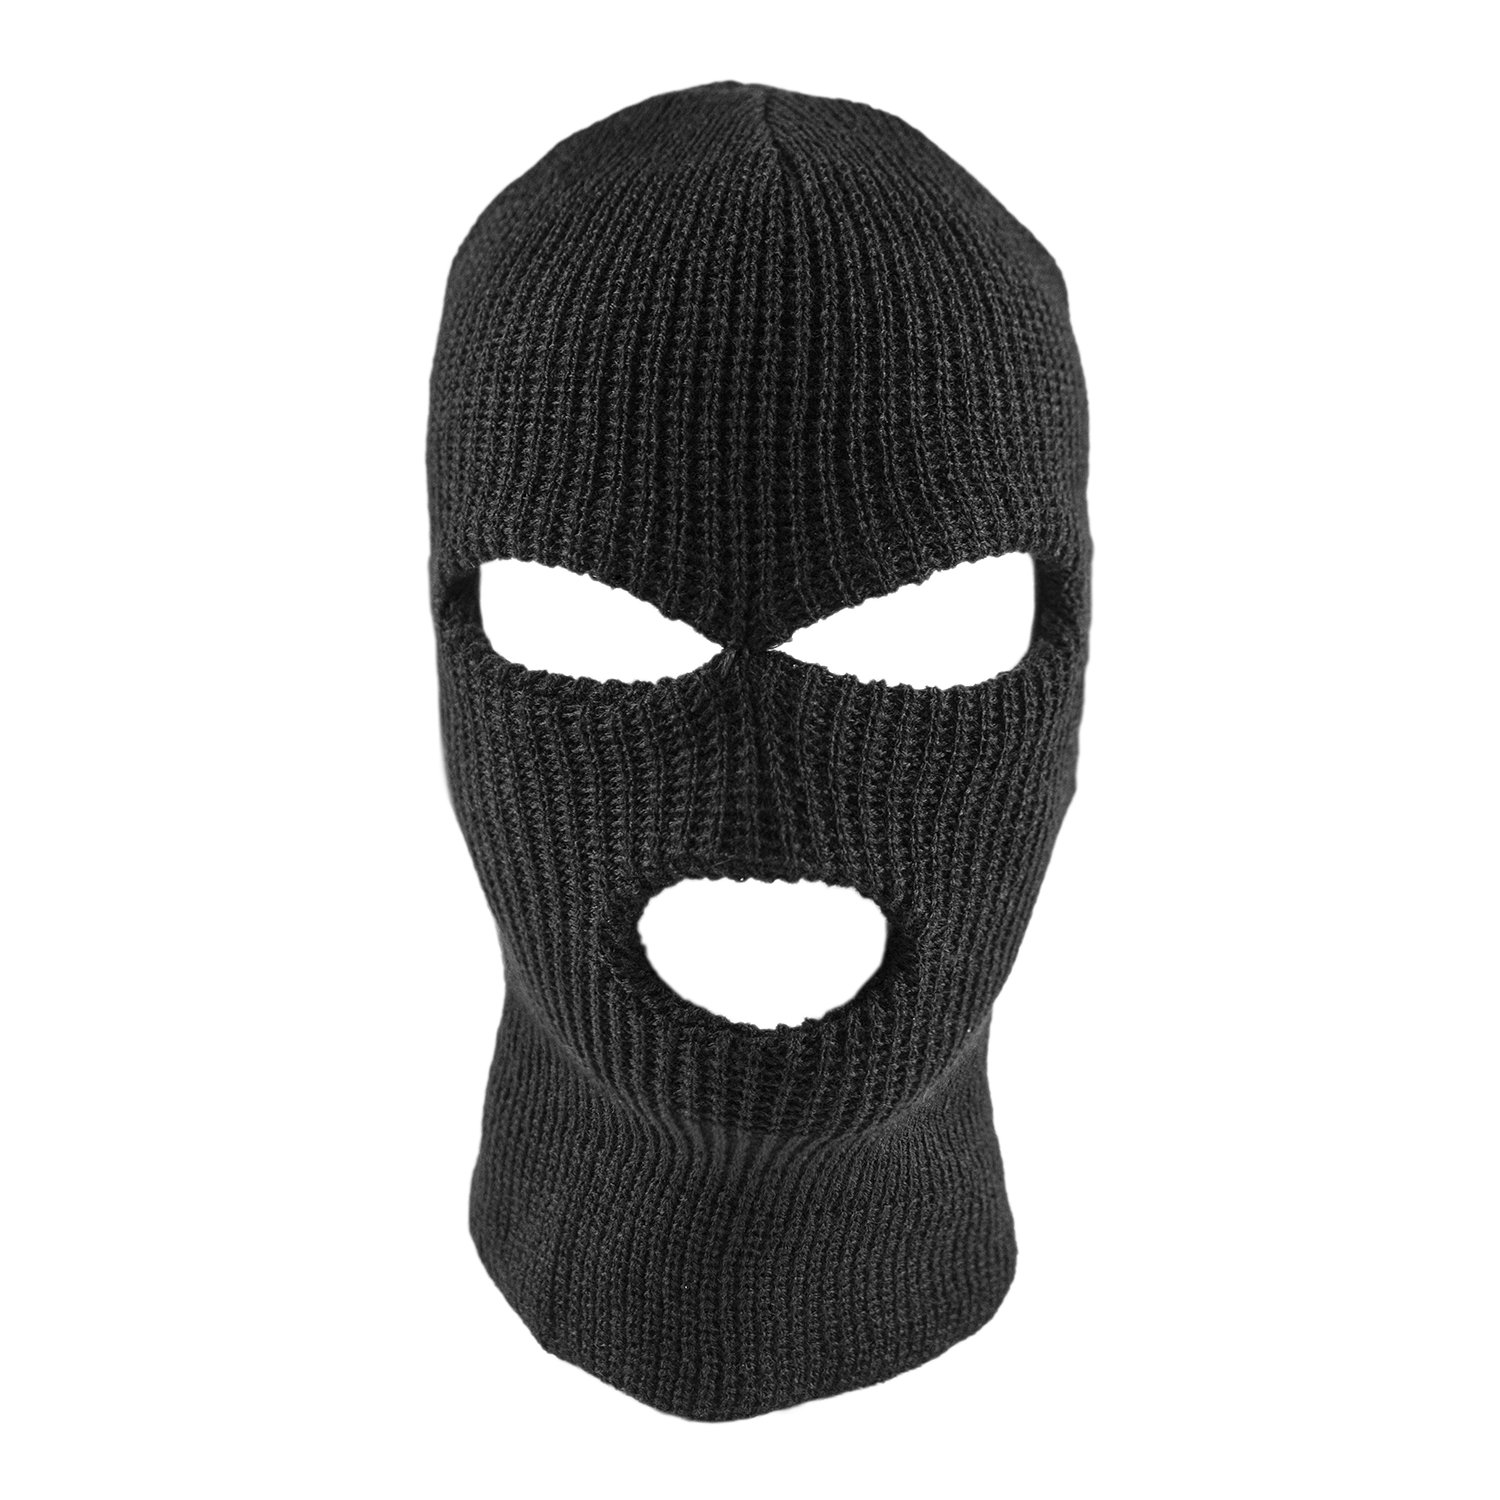 17f0bda7fb2e3 Amazon.com  Knit Sew Acrylic Outdoor Full Face Cover Thermal Ski Mask by  Super Z Outlet